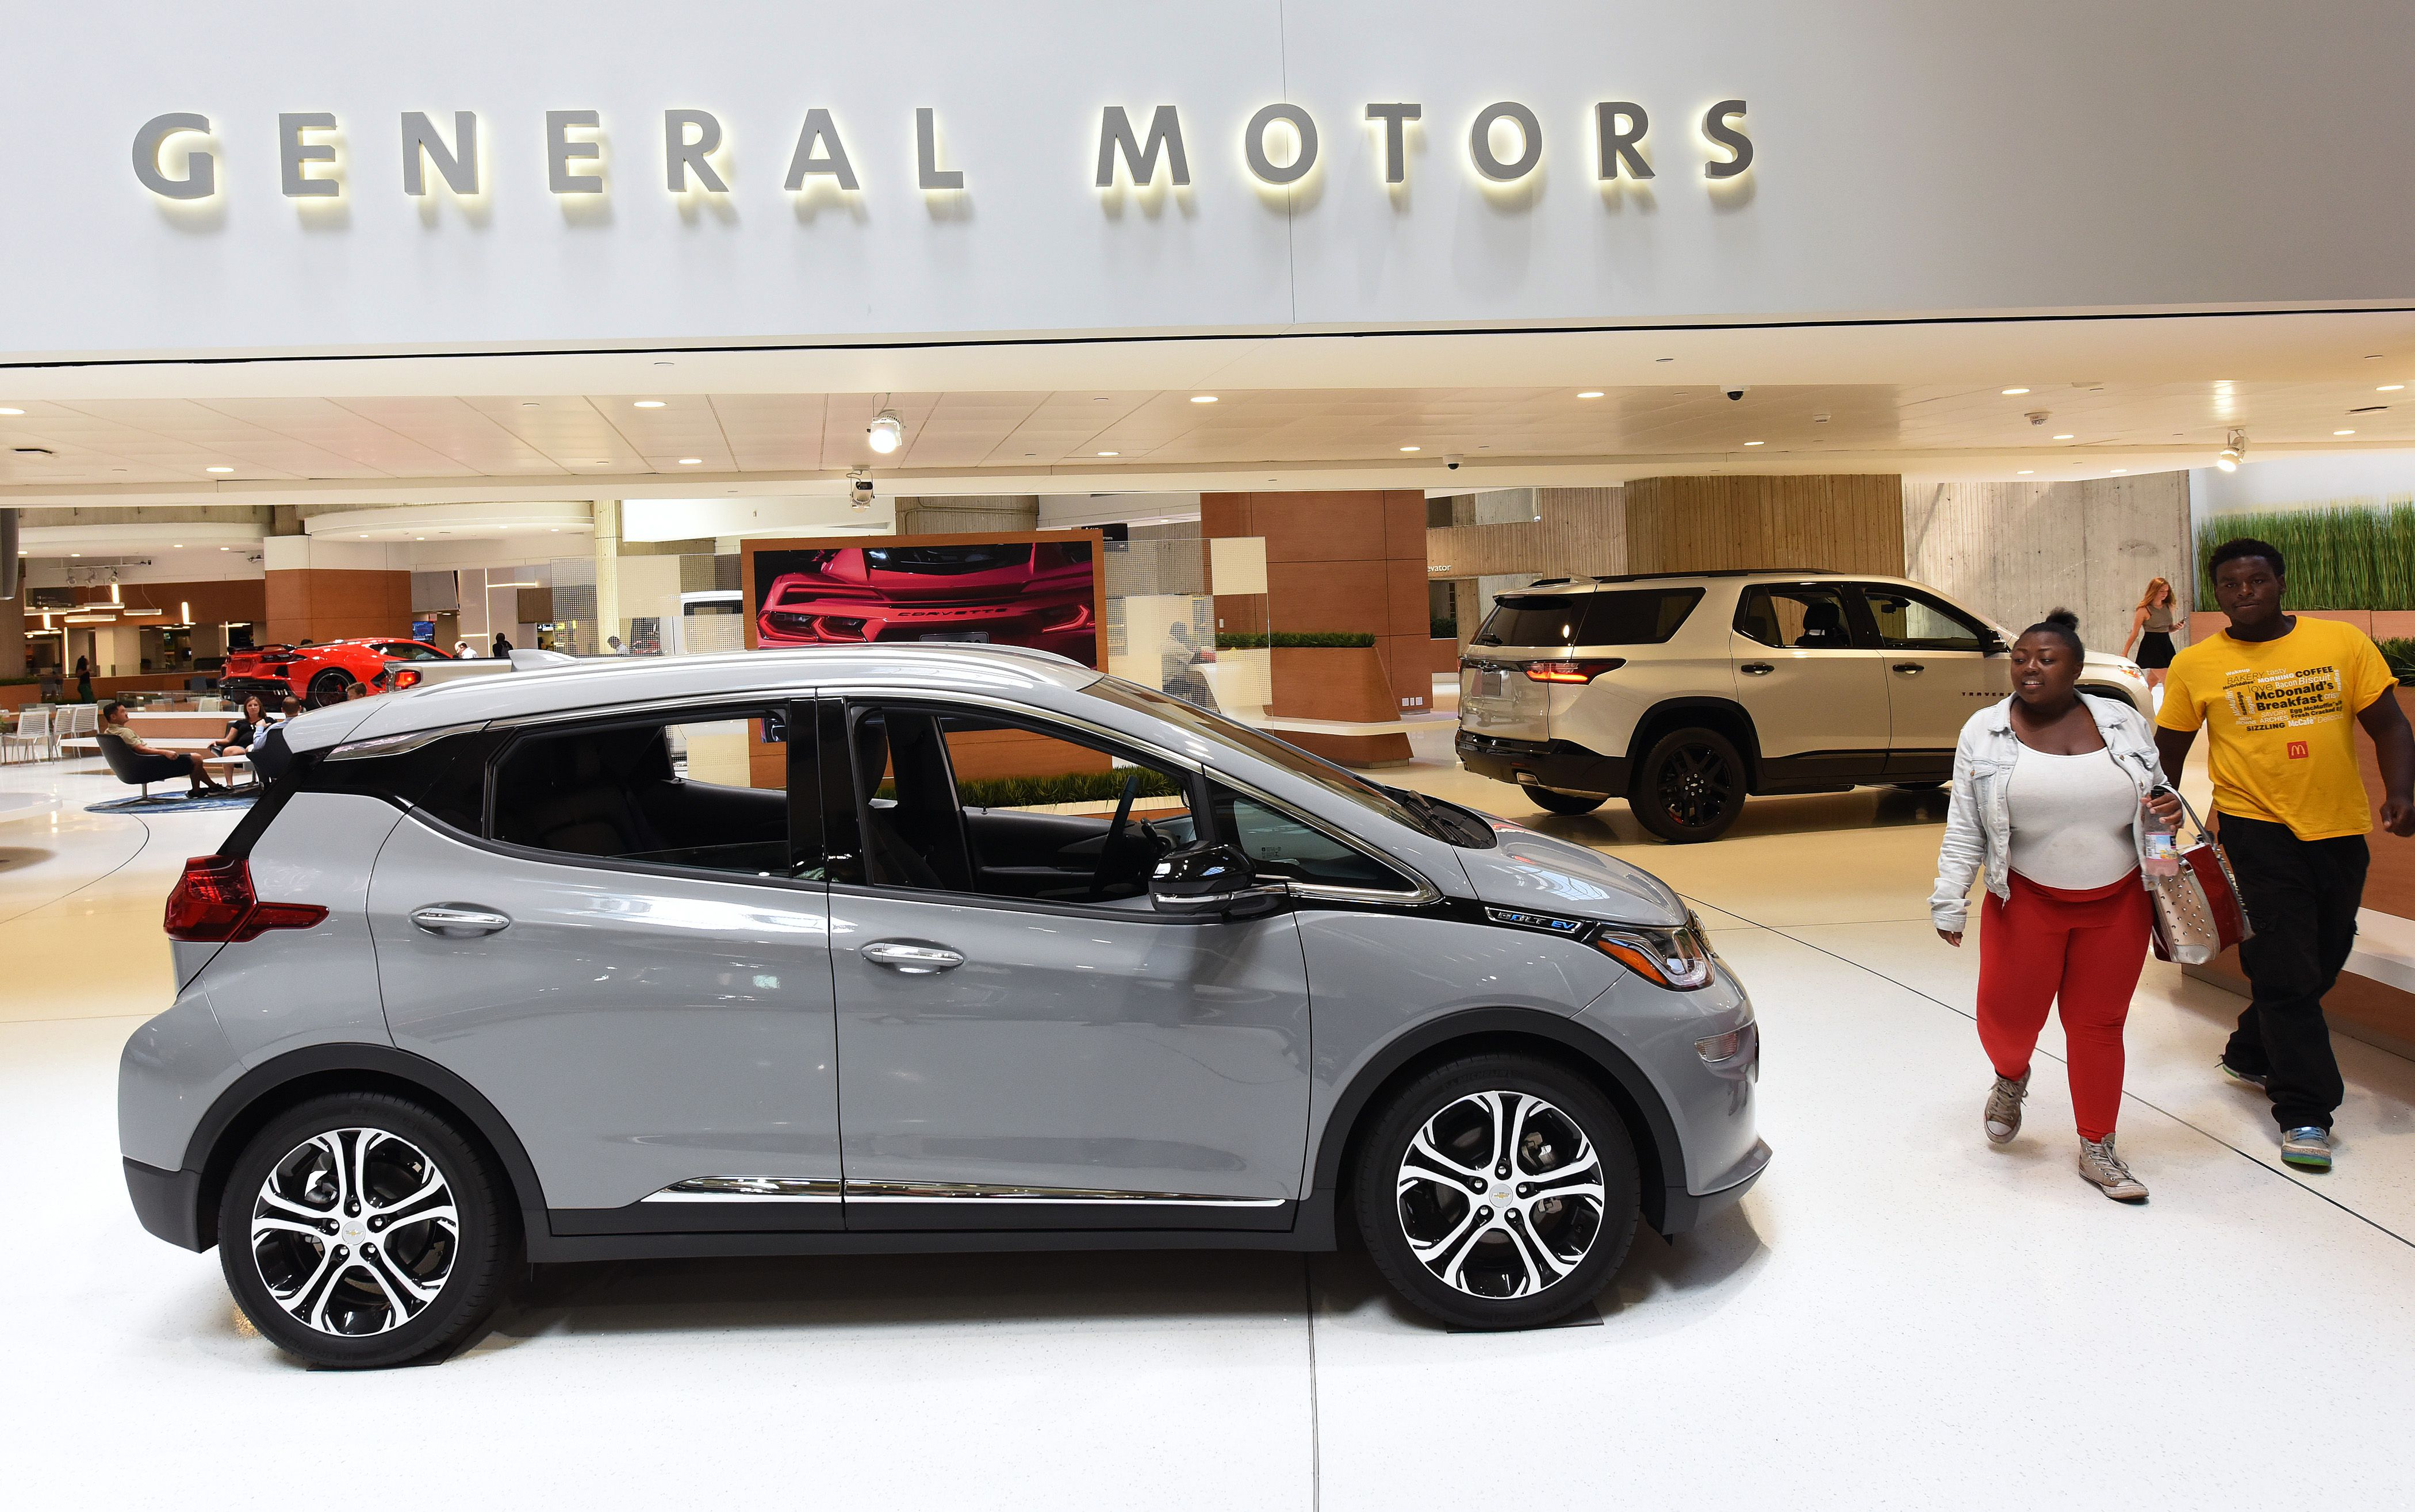 GM and Honda team up to develop electric vehicles